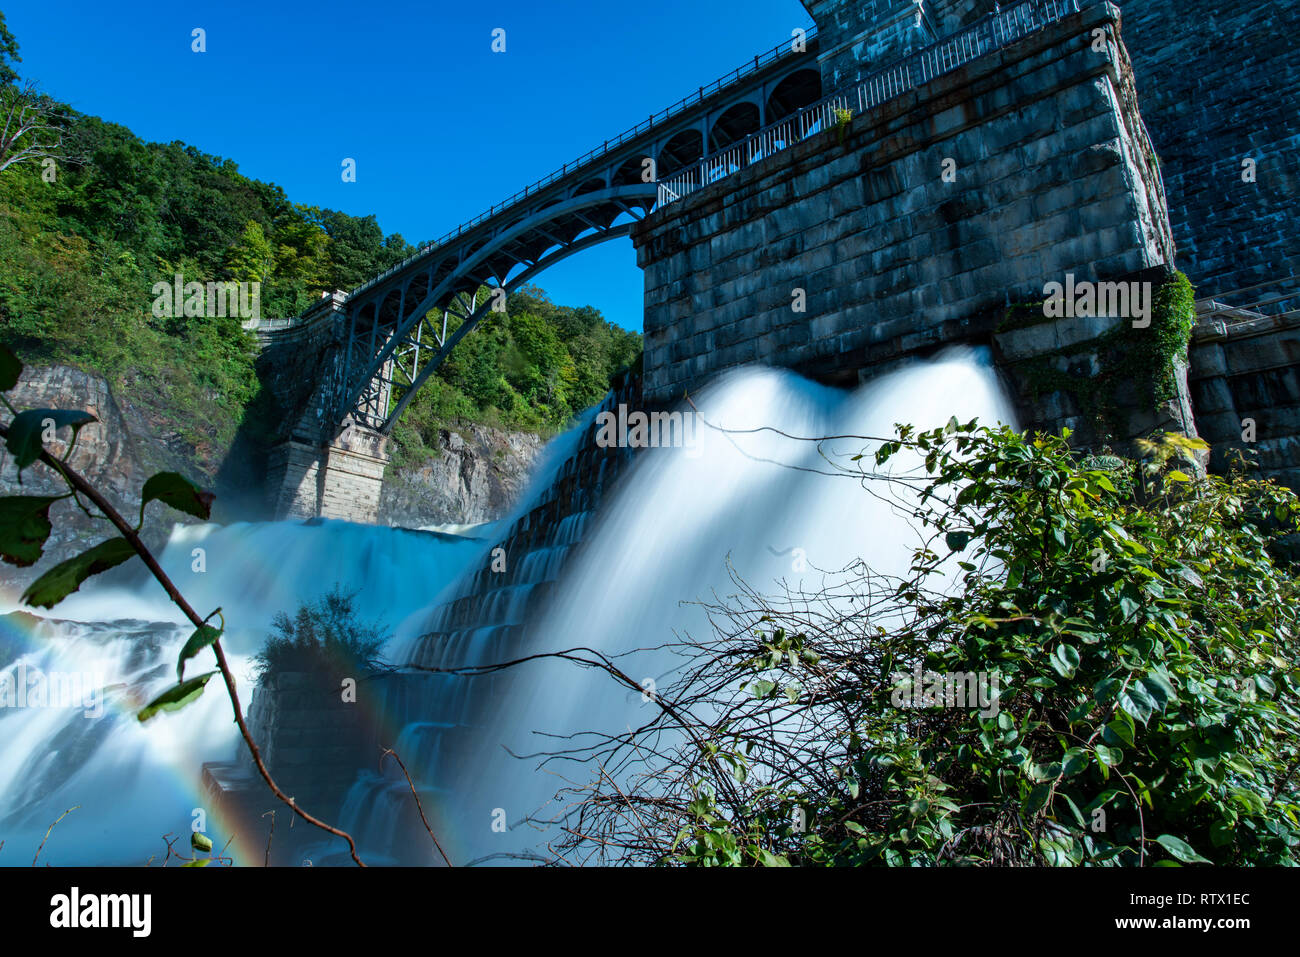 Dam controlling the flow of water. - Stock Image